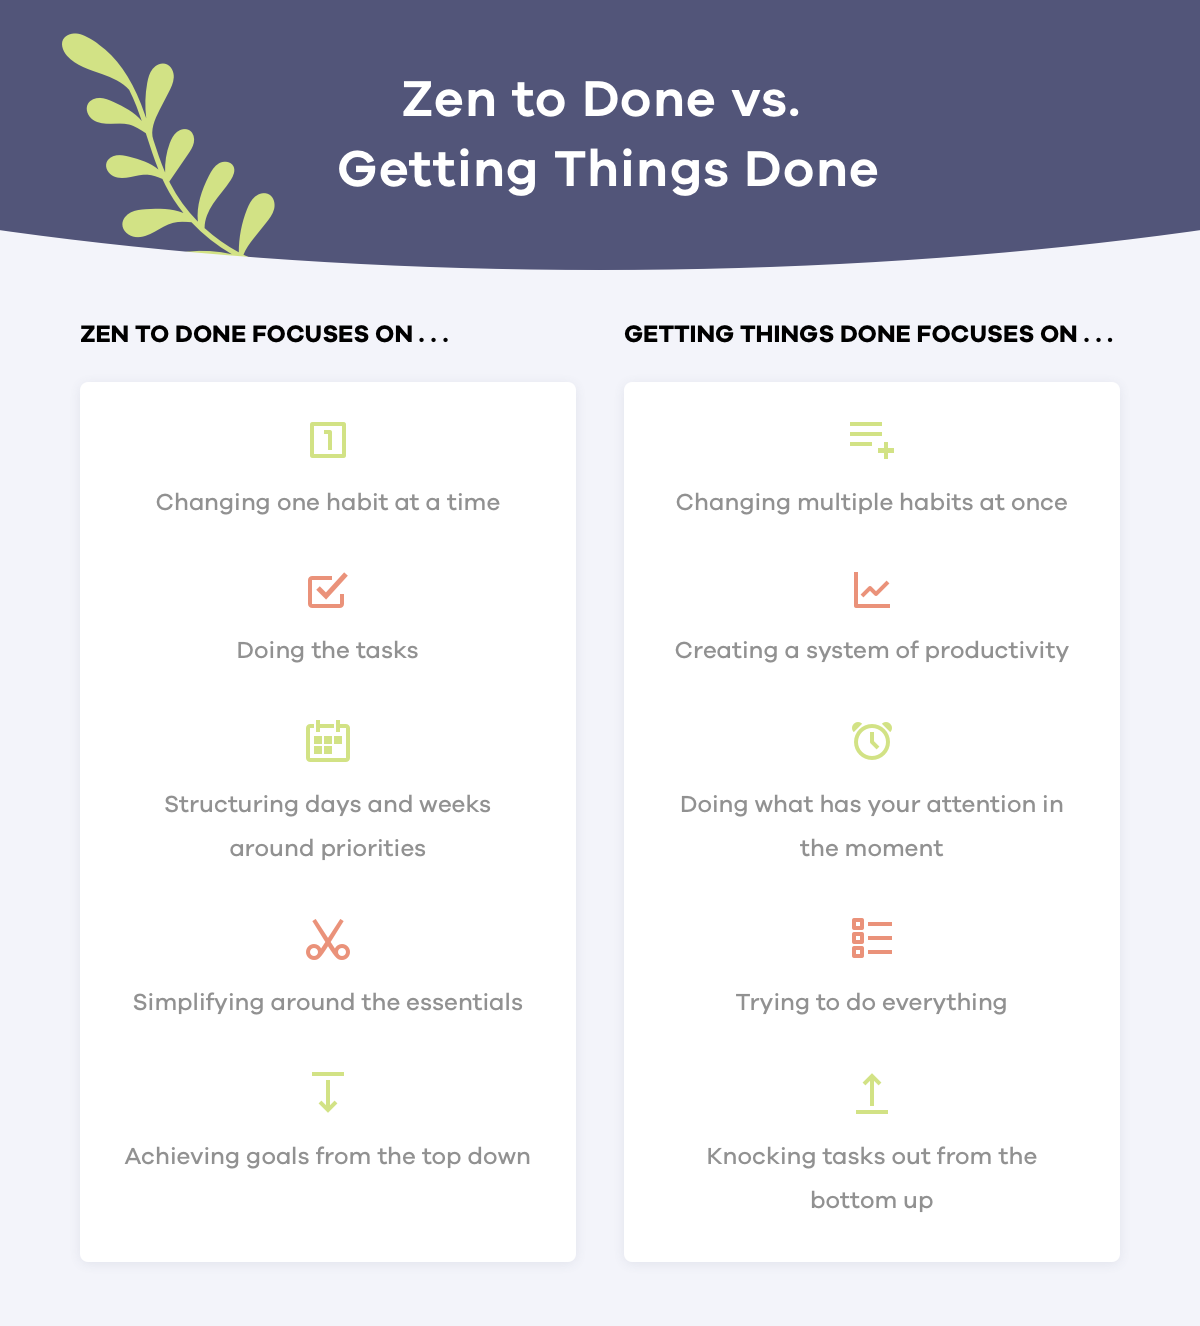 Zen to Done vs. Getting Things Done